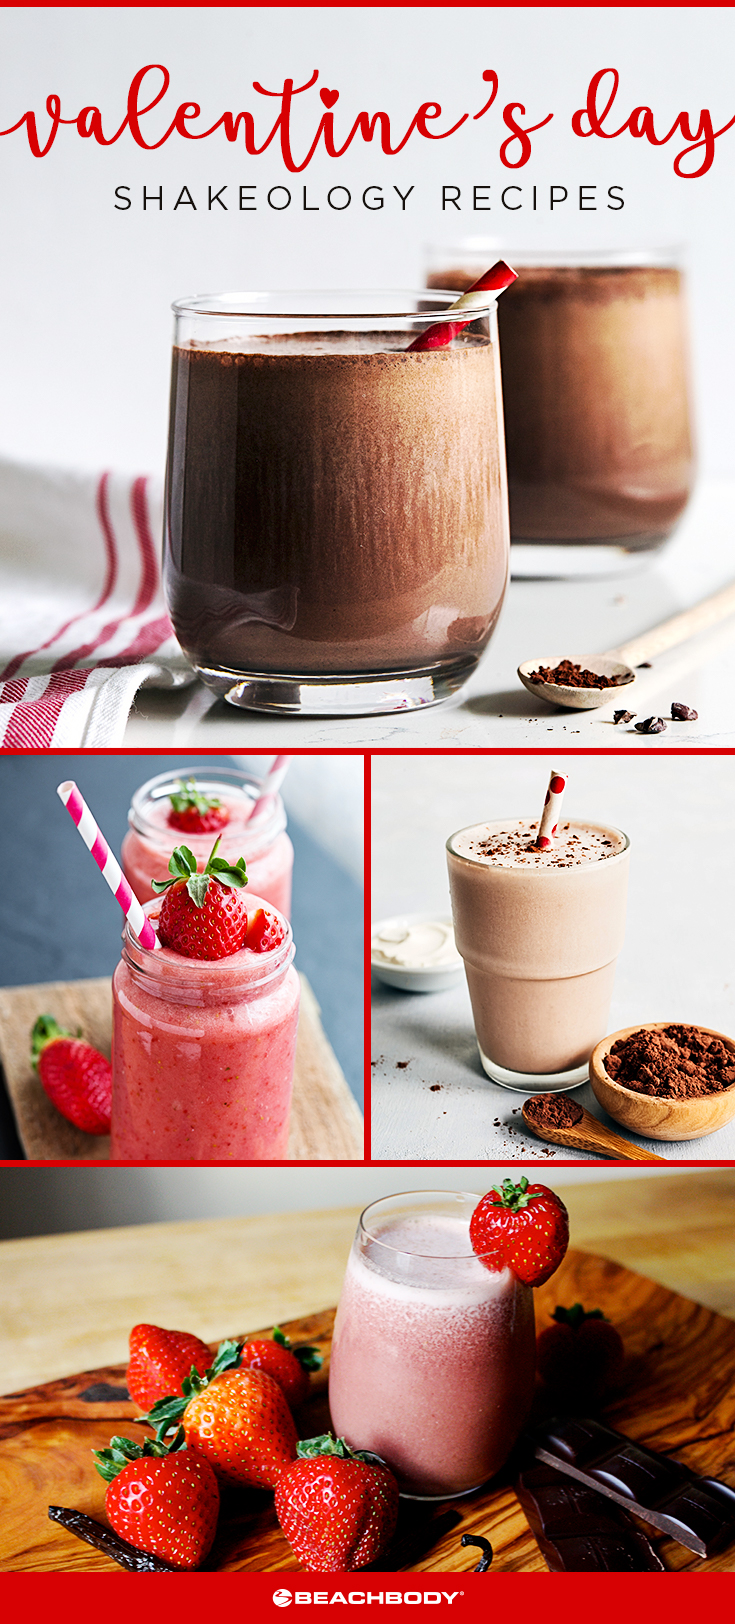 7 Valentine's Day Shakeology Recipes